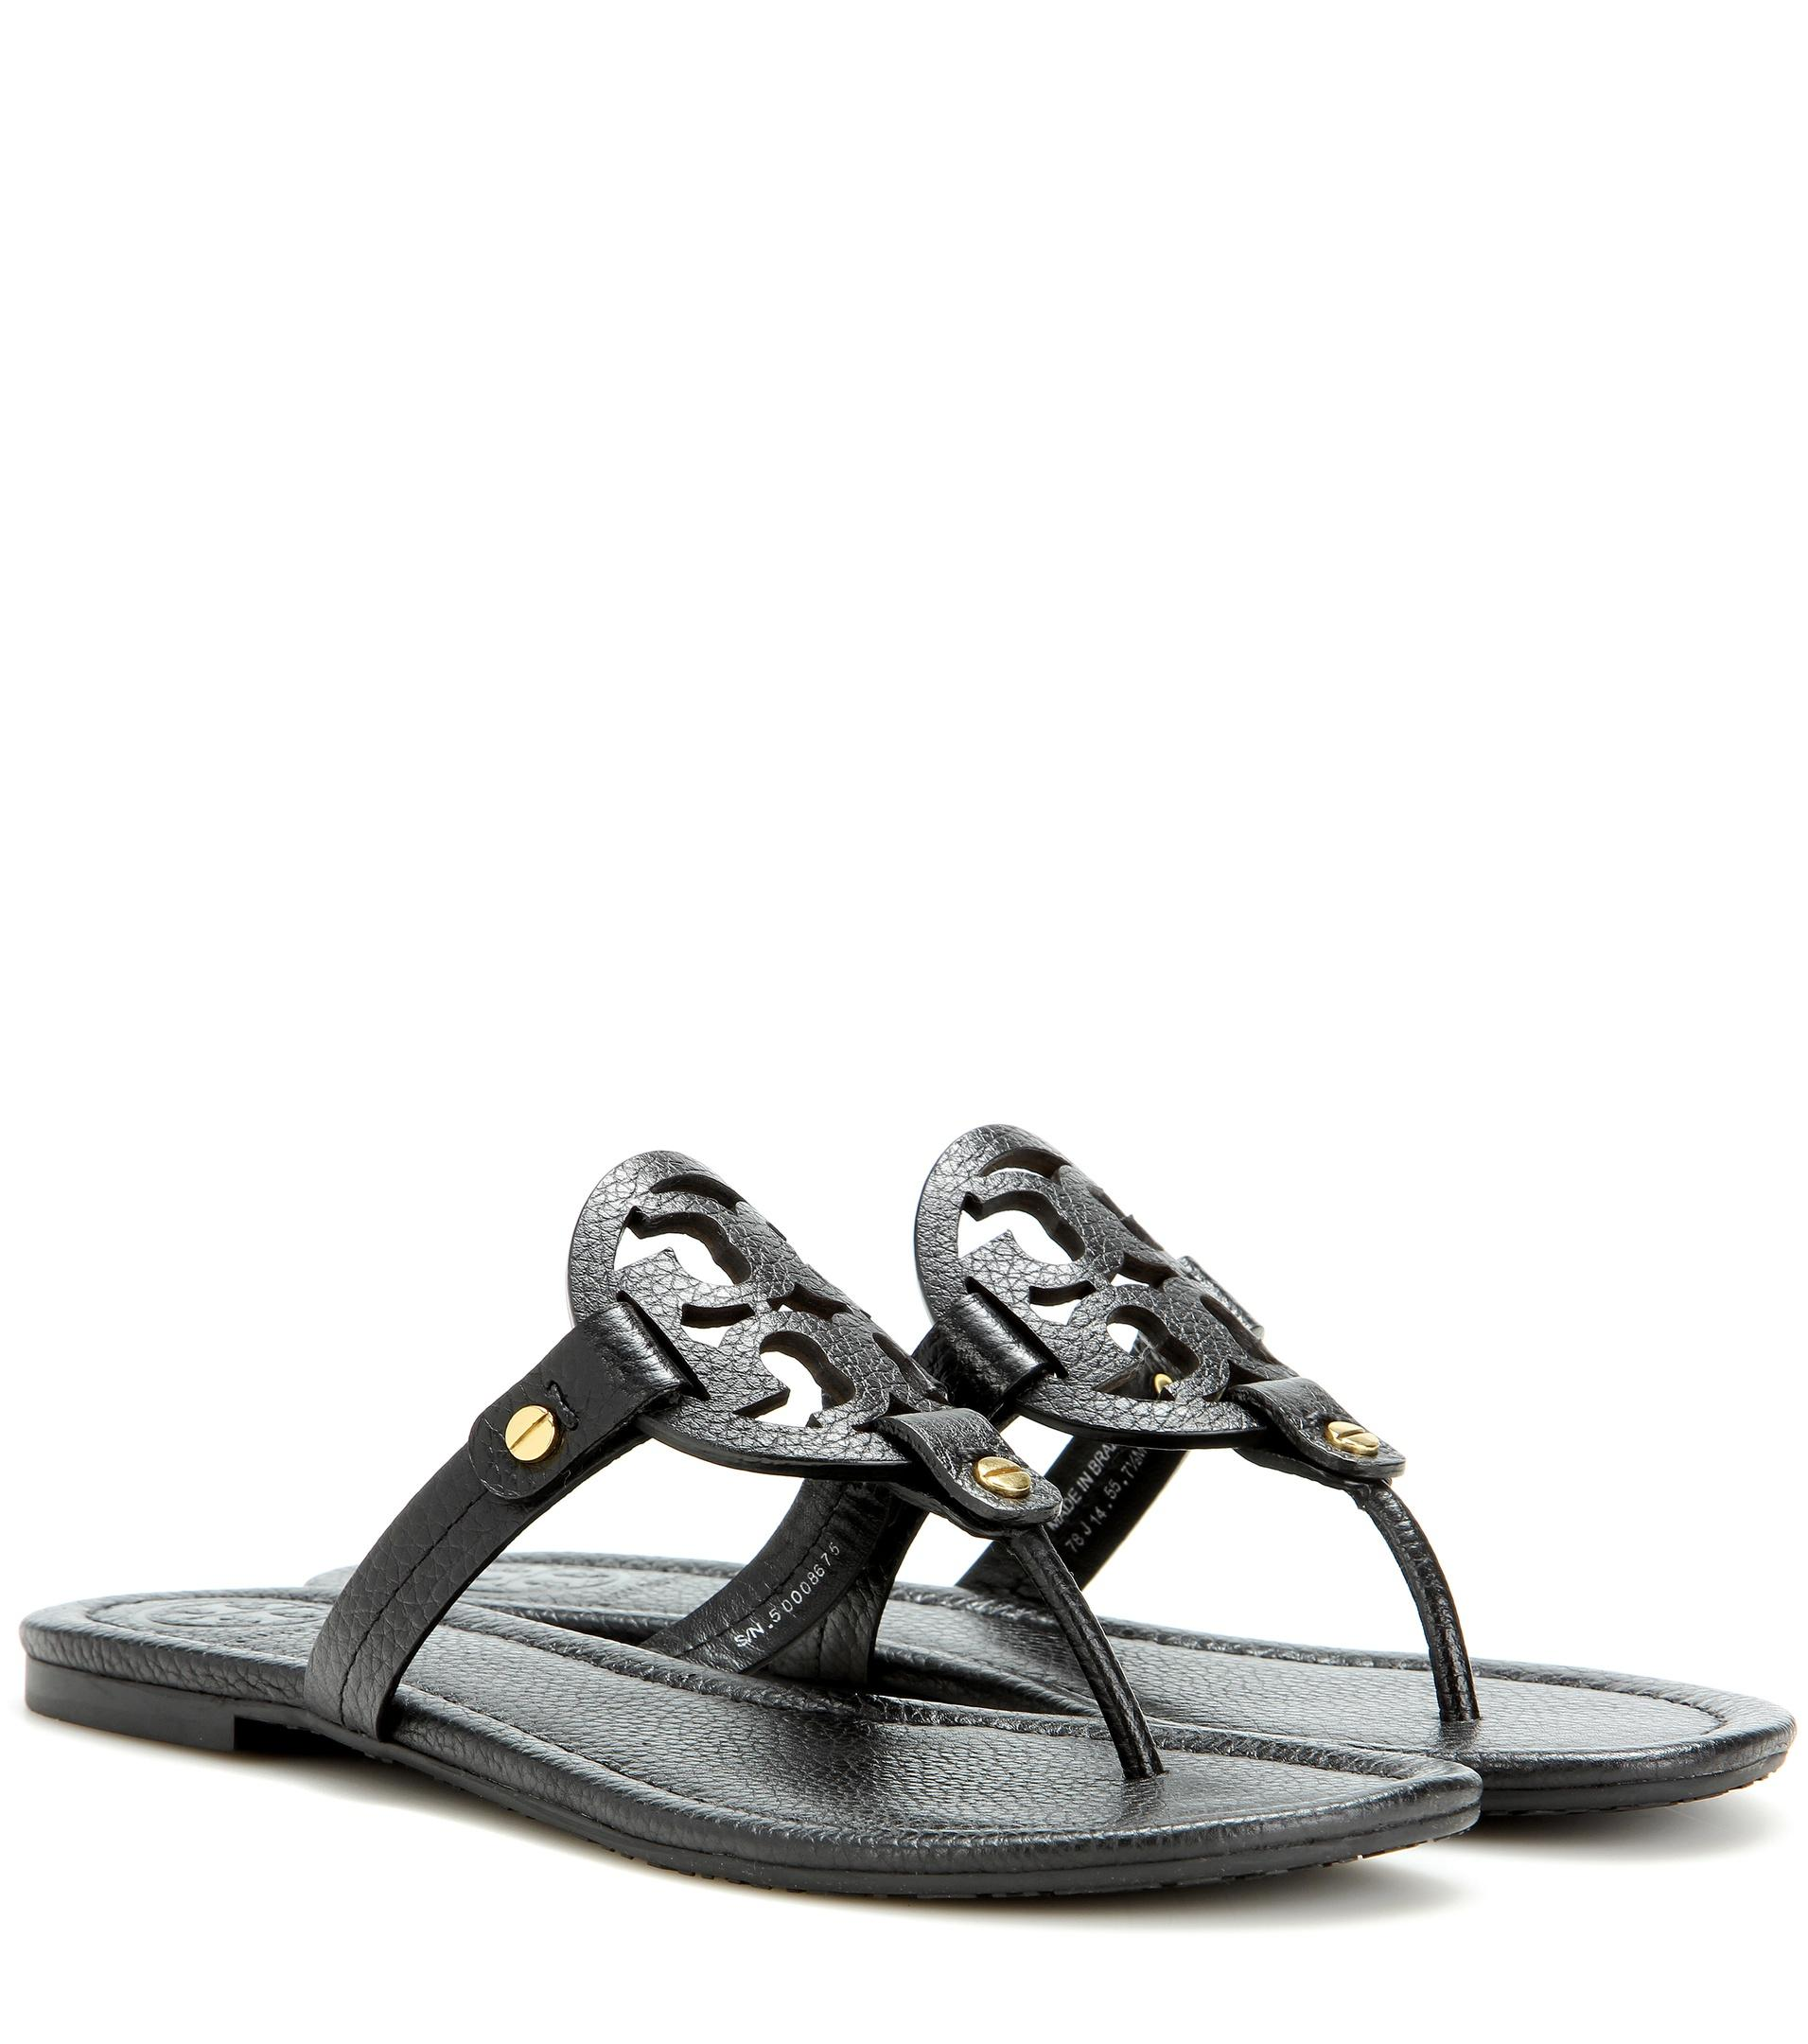 Tory Burch leather sandals let you integrate elegant but organic styles into your wardrobe. Choose black or brown options for footwear that mixes and matches easily with almost any outfit, or opt for a bit of color for days when you really feel like kicking up your heels.